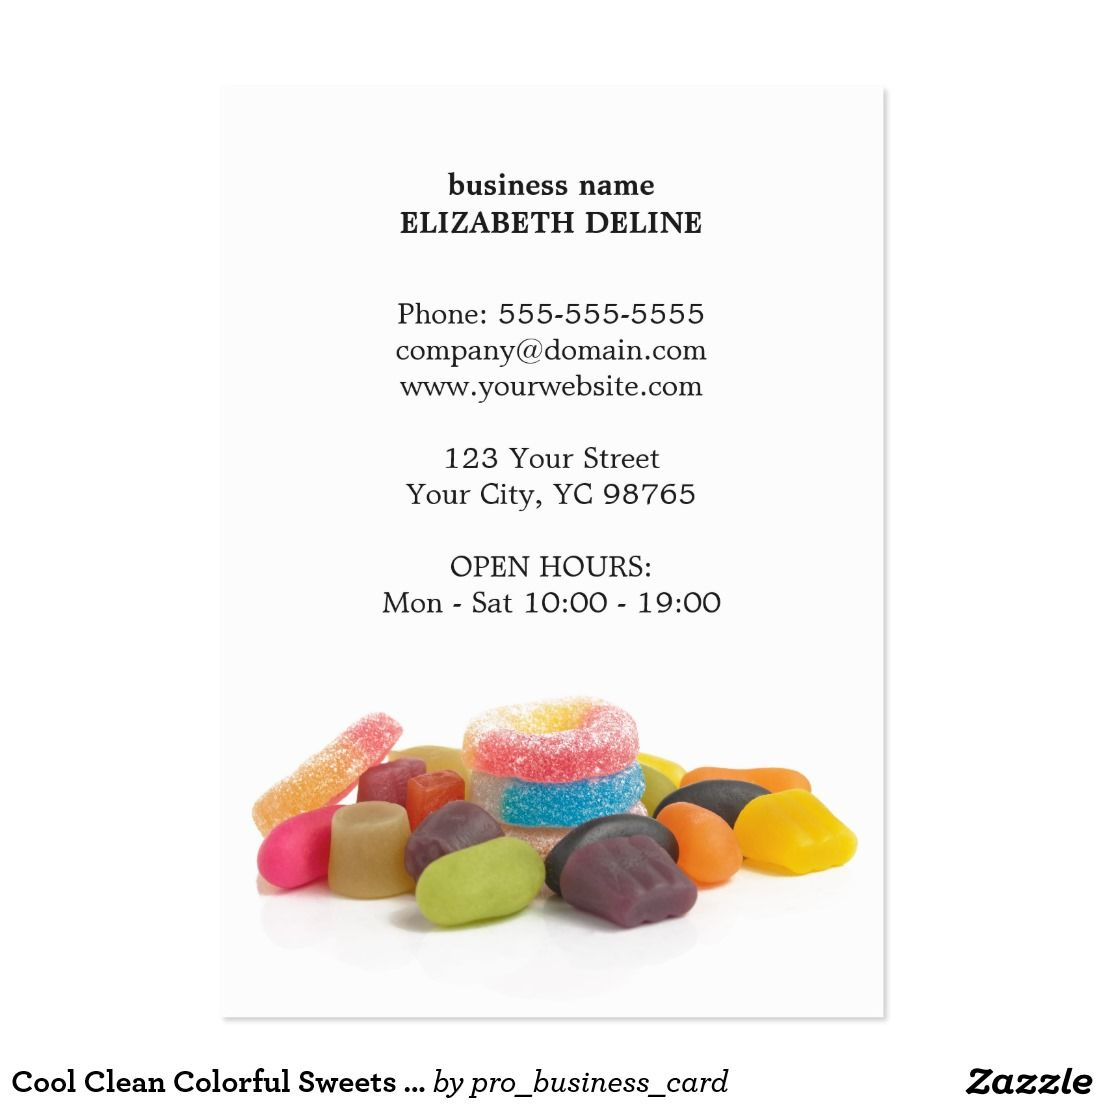 Cool Clean Colorful Sweets Sweet Shop Elegant business